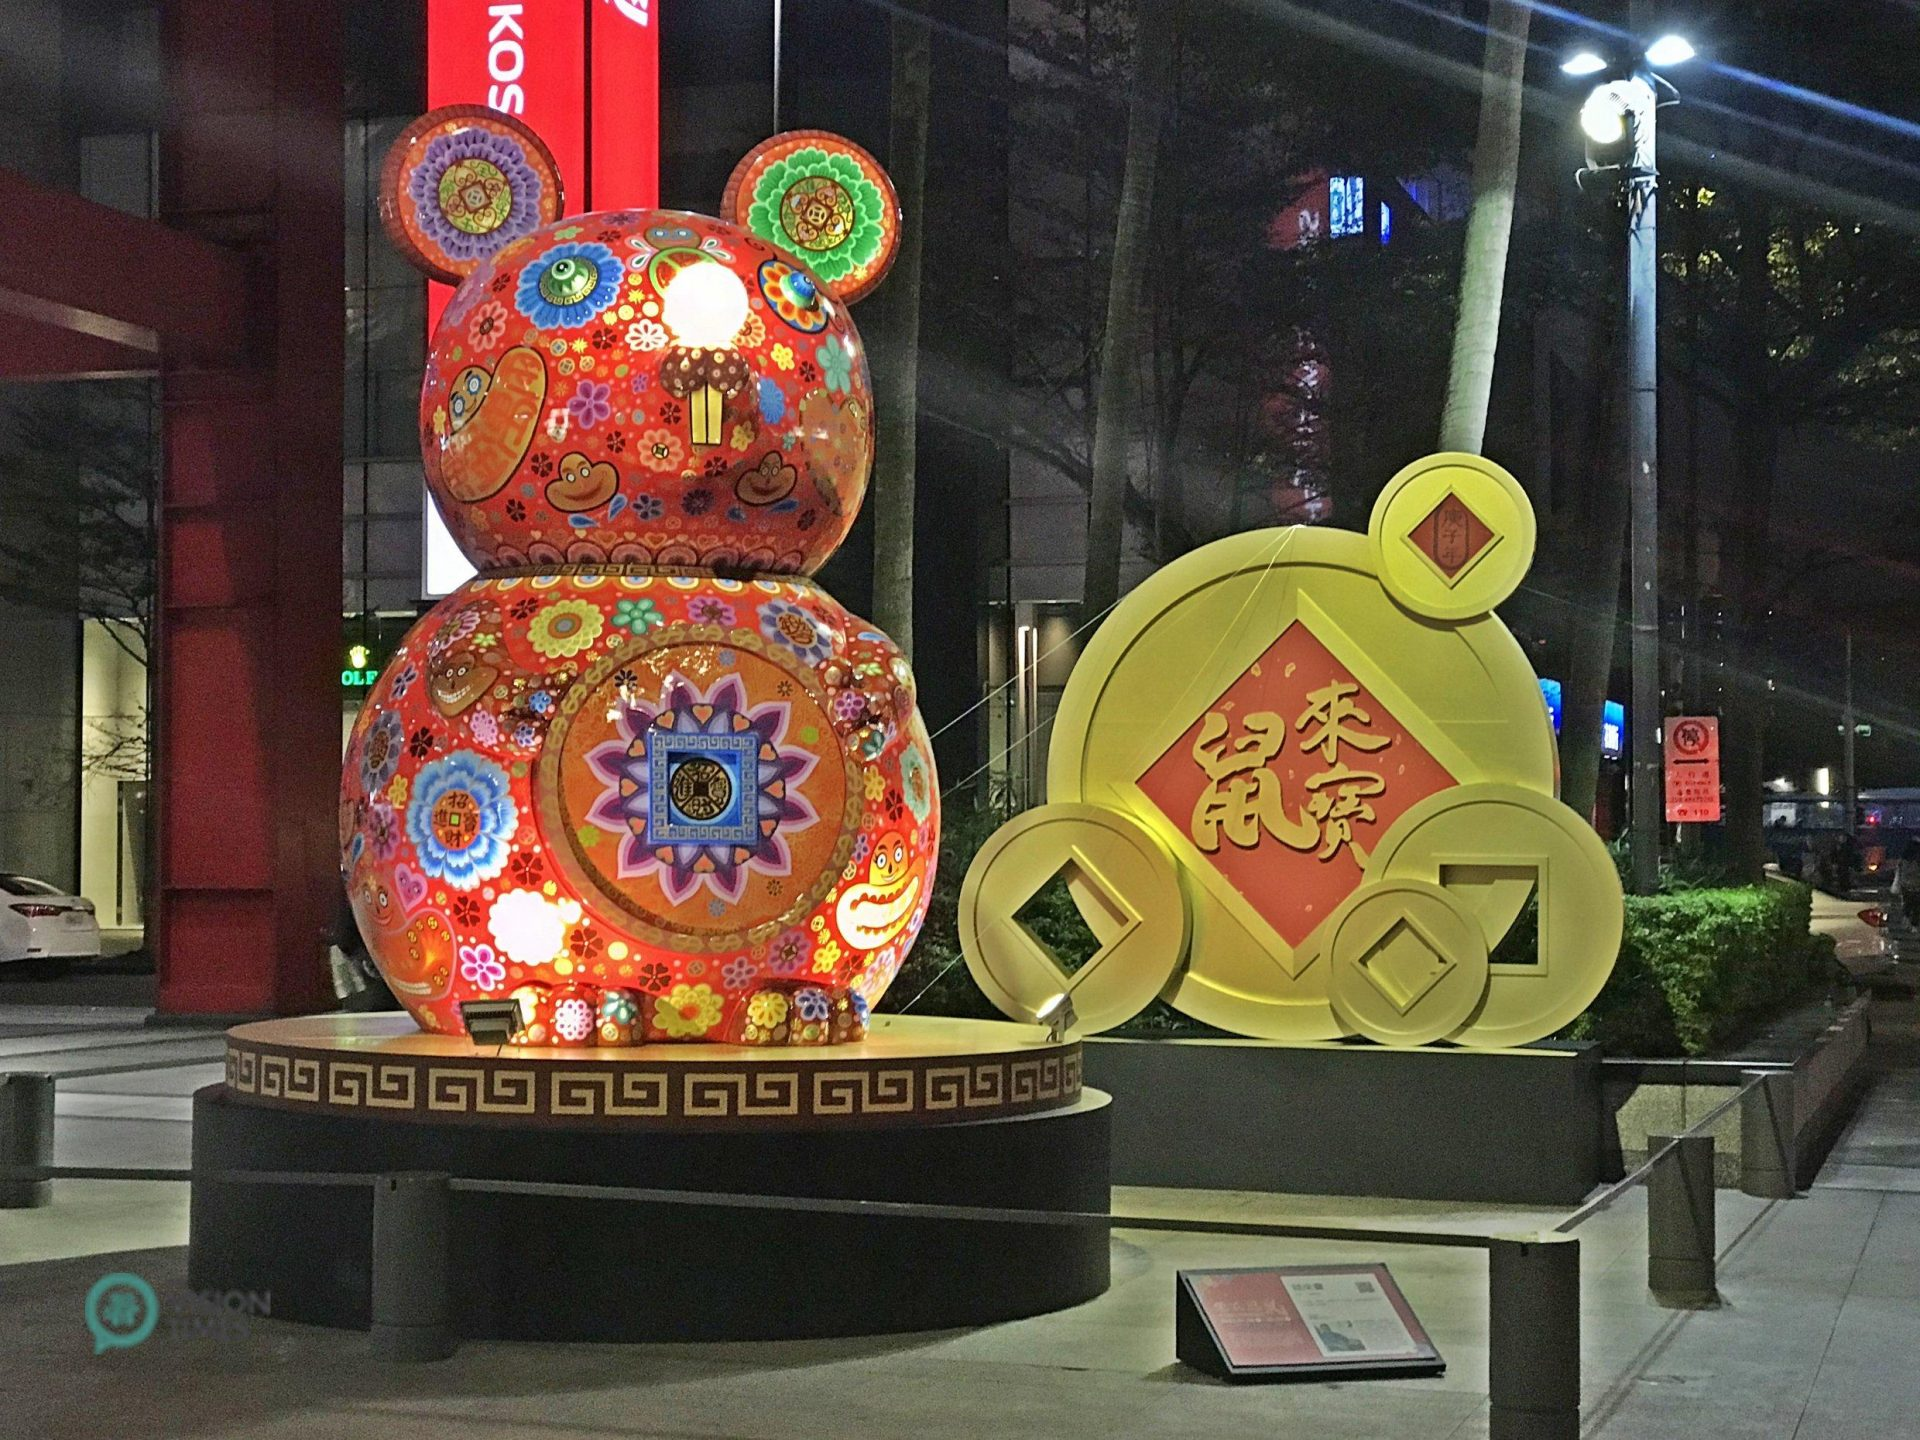 An art installation featuring the Chinese zodiac sign of the rat at a shopping mall in Taipei's Xinyi Commercial District. (Image: Julia Fu / Vision Times)